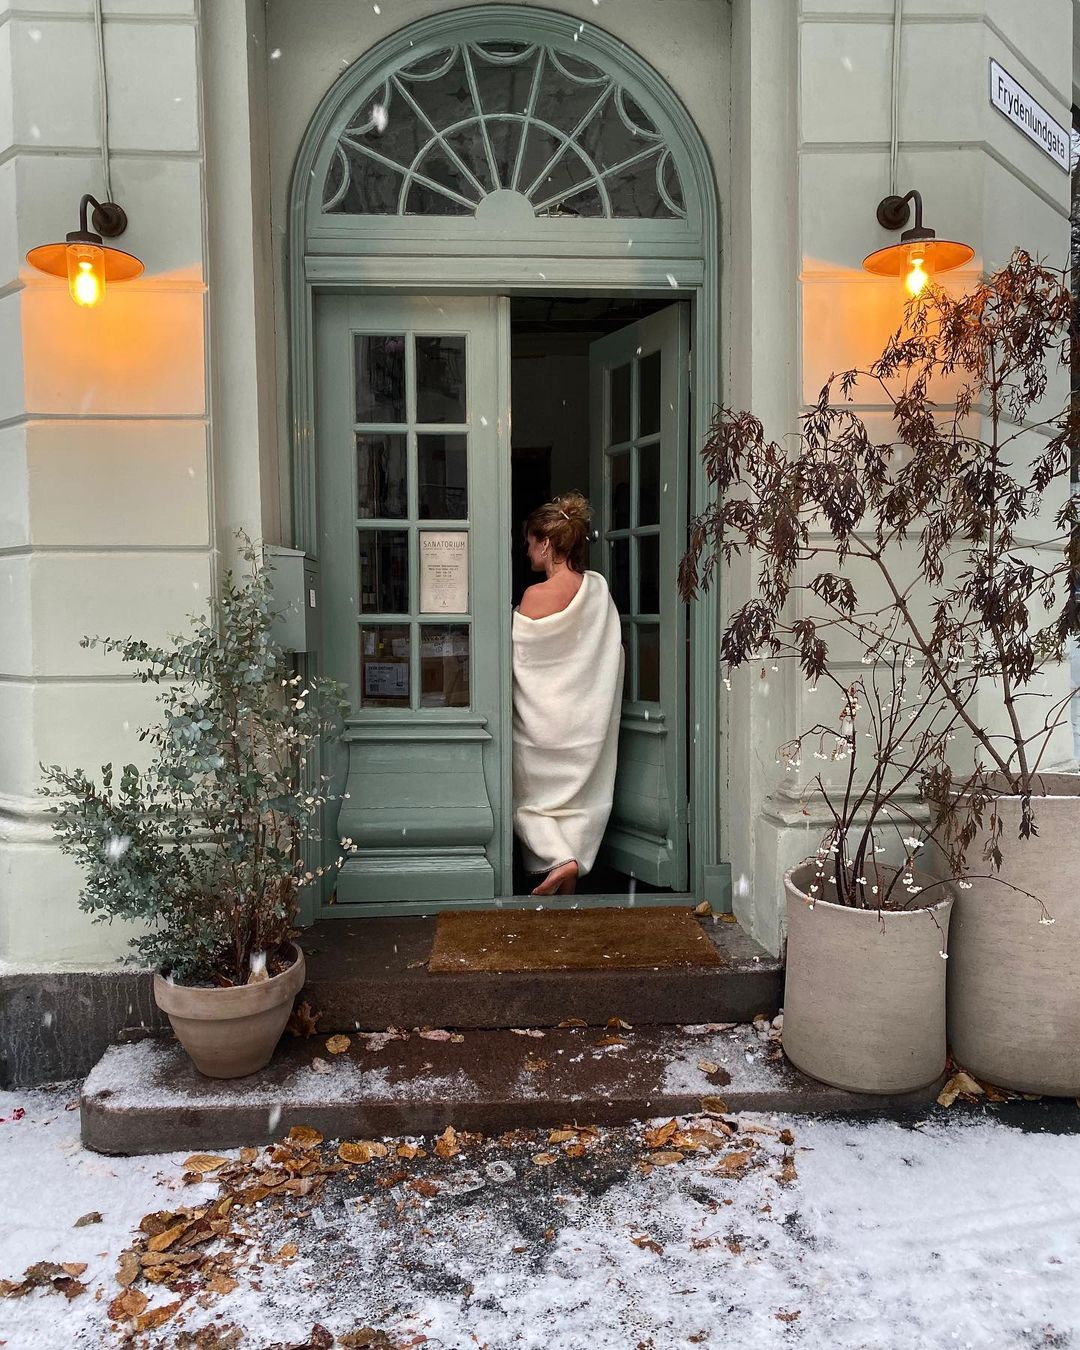 Woman draped in white linen entering a building